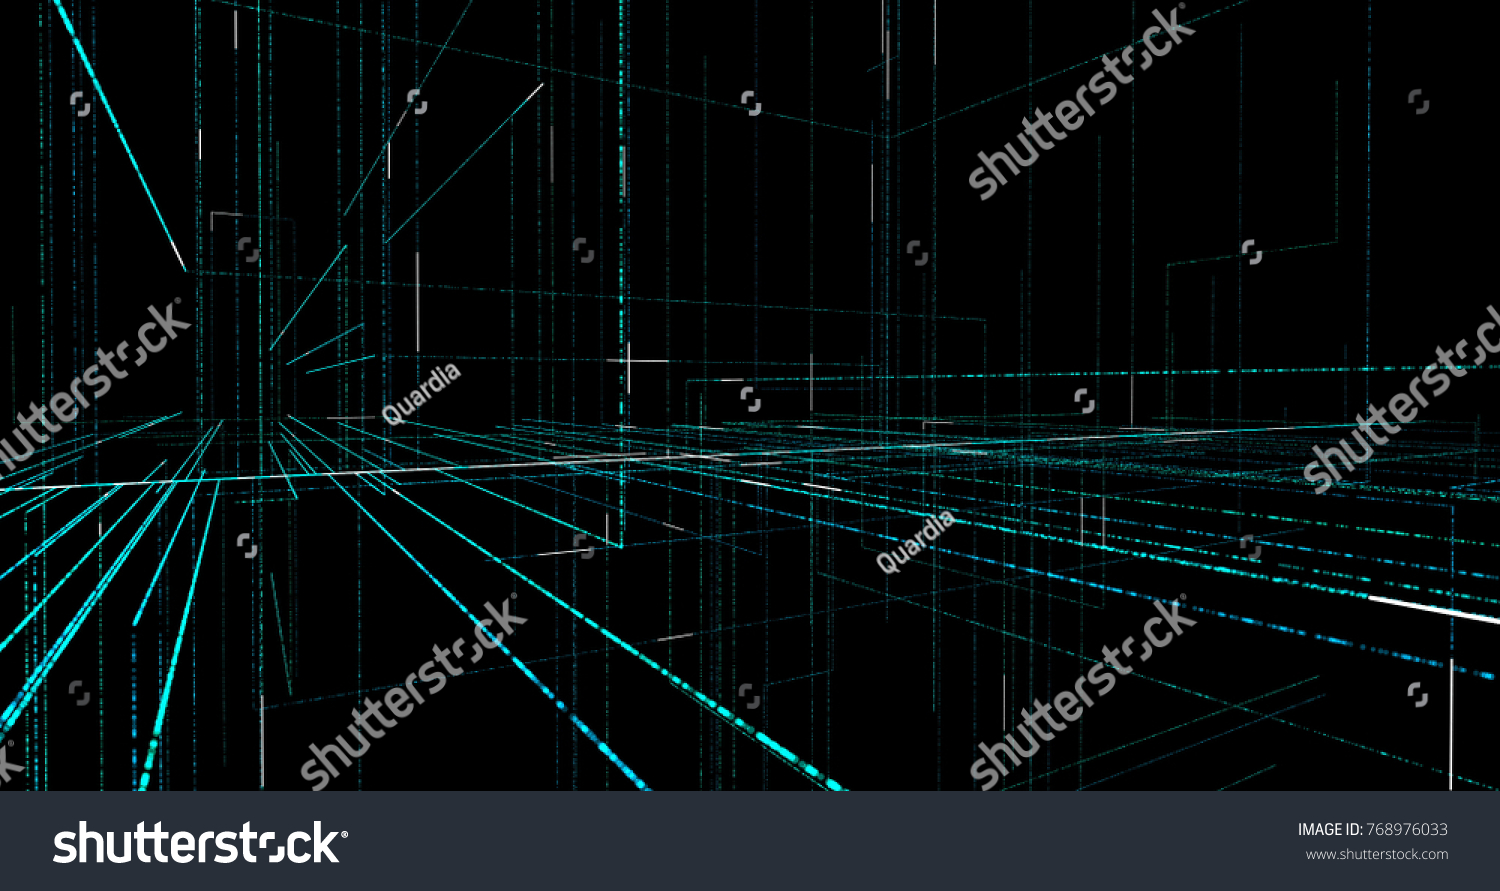 Drawing Lines With Core Graphics : Abstract digital background geometry lines dashes stock